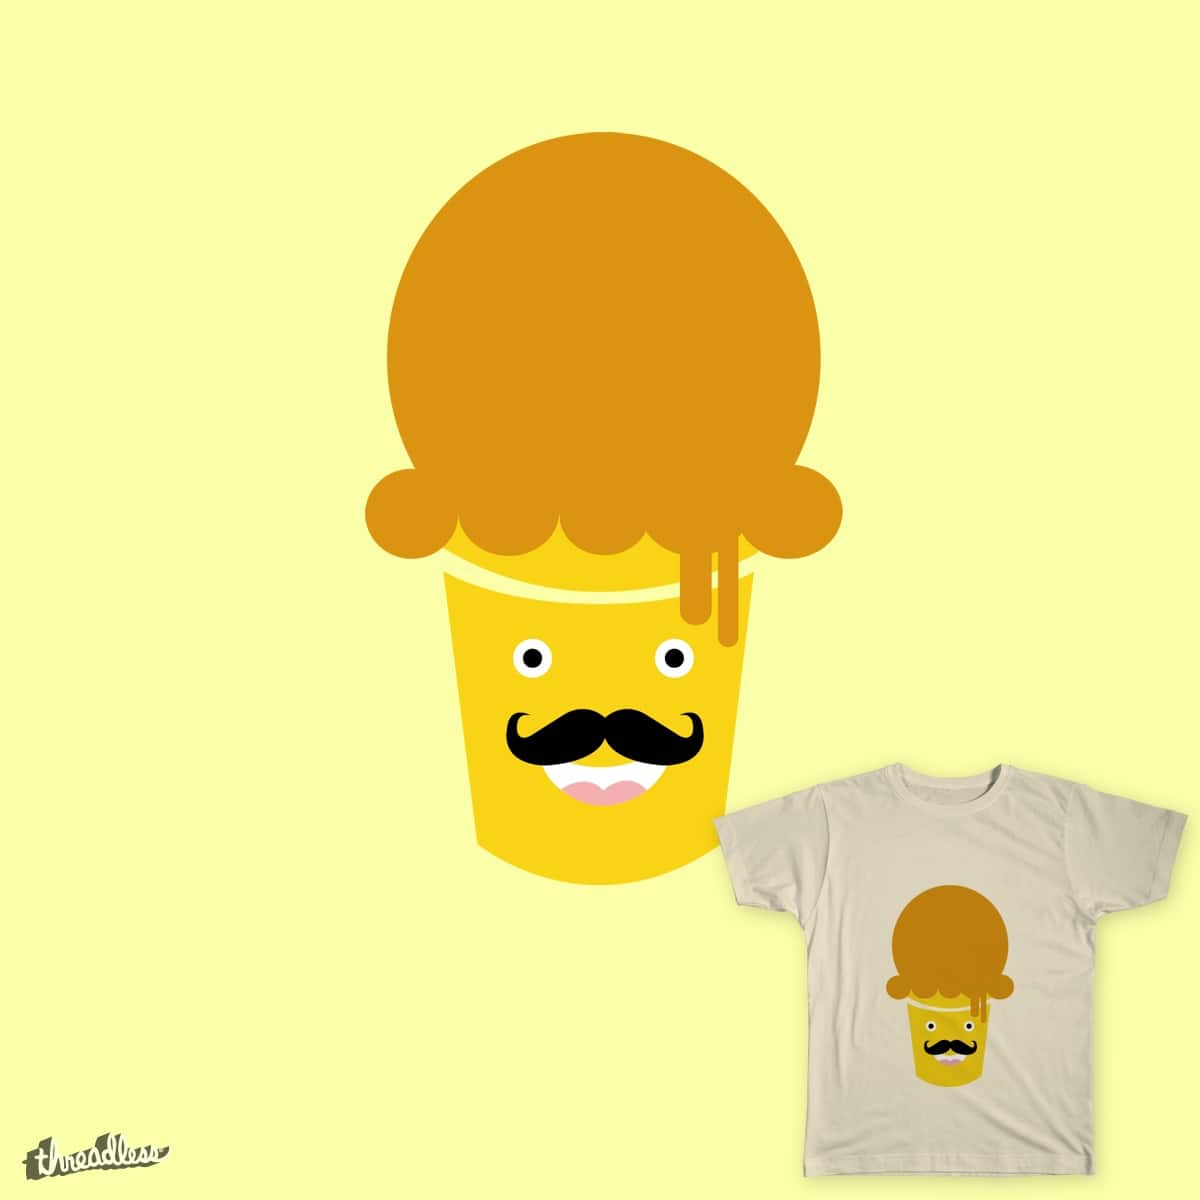 ice creamustache by titusurya on Threadless